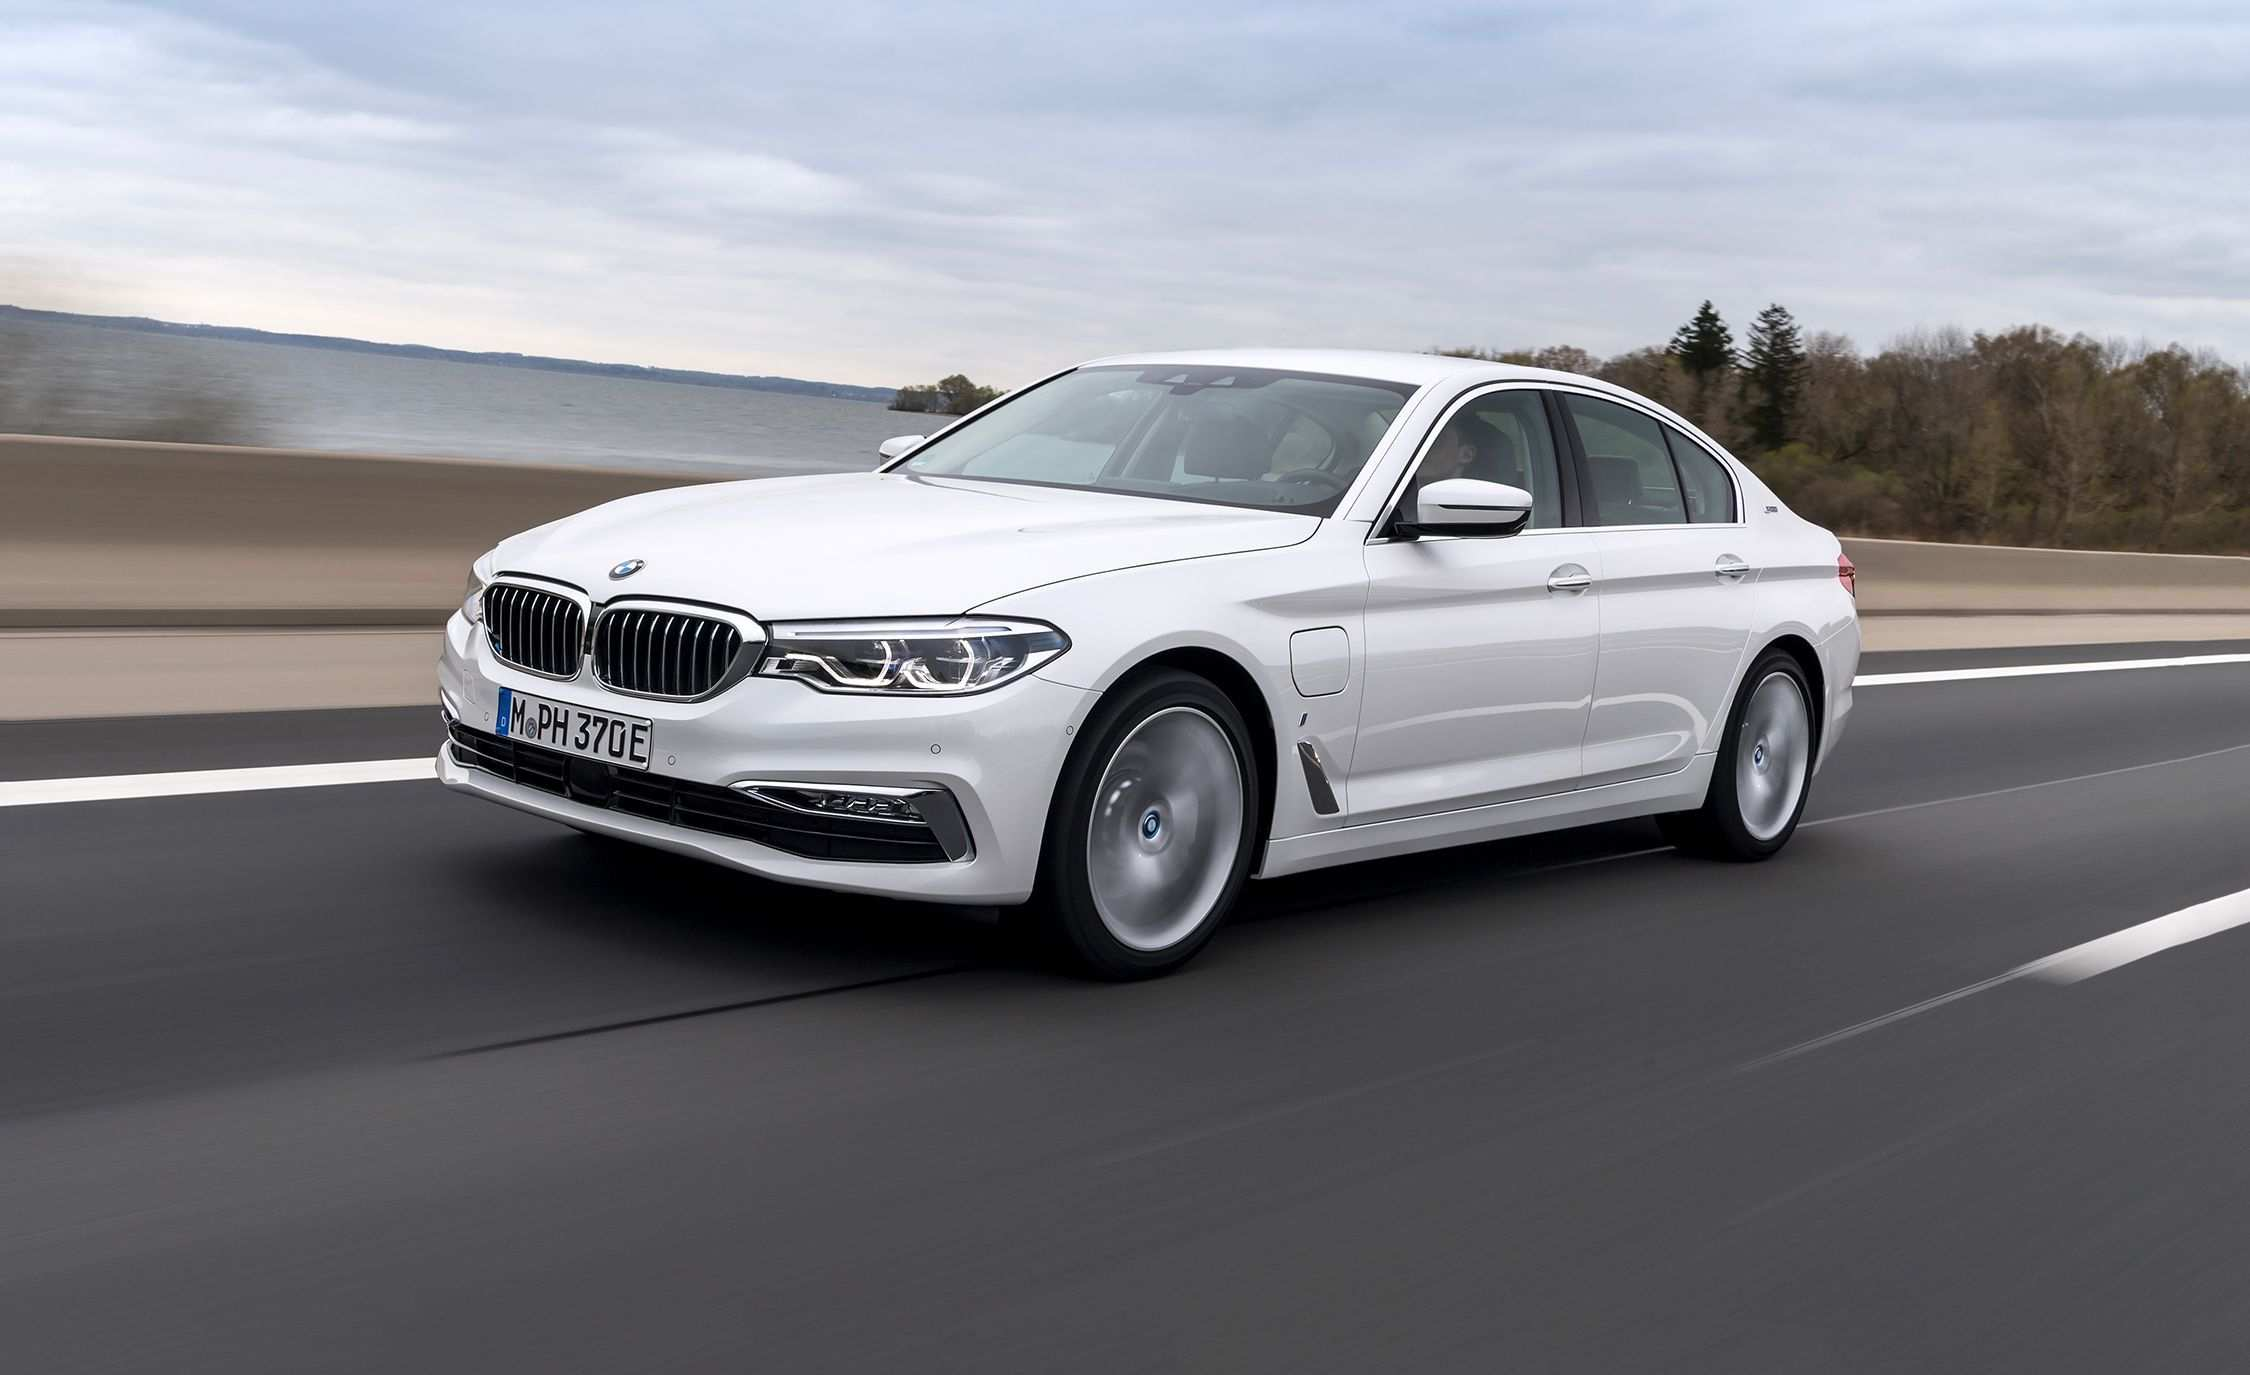 65 Concept of 2020 BMW 3 Series Edrive Phev Specs and Review by 2020 BMW 3 Series Edrive Phev